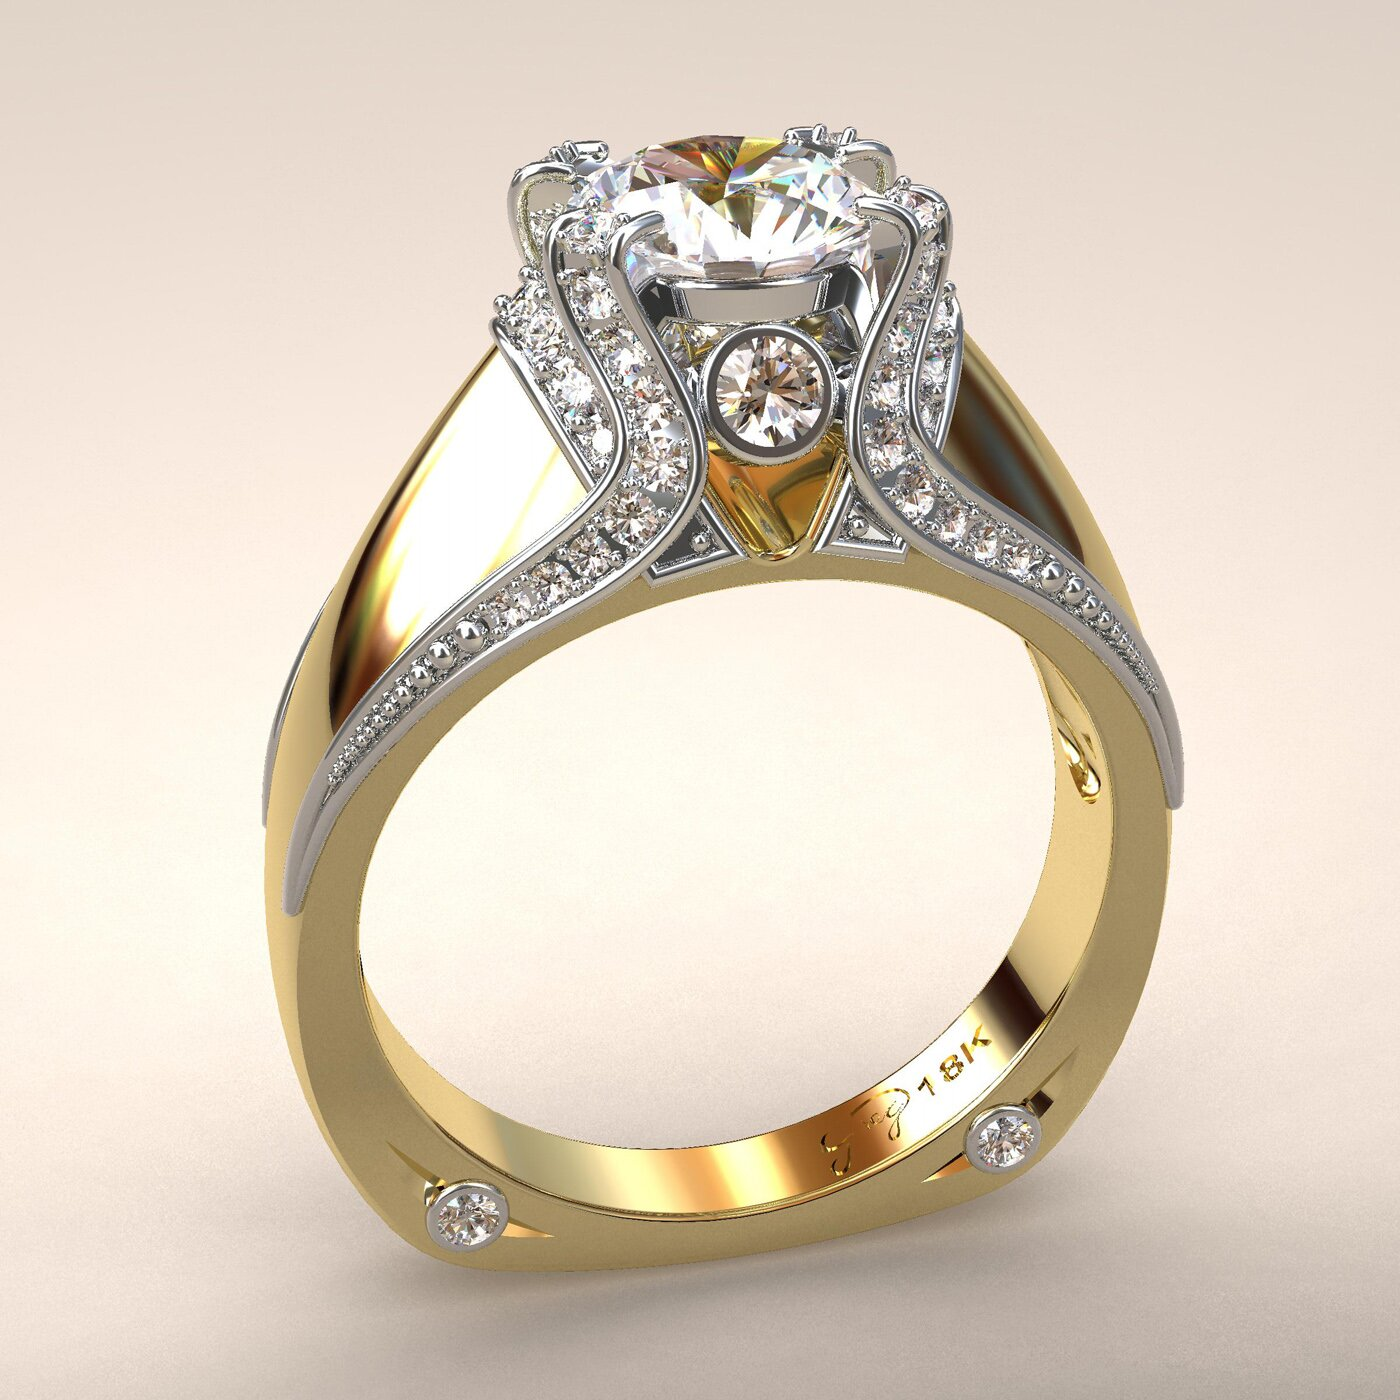 16 Examples Of Loved Diamond Ring Designs